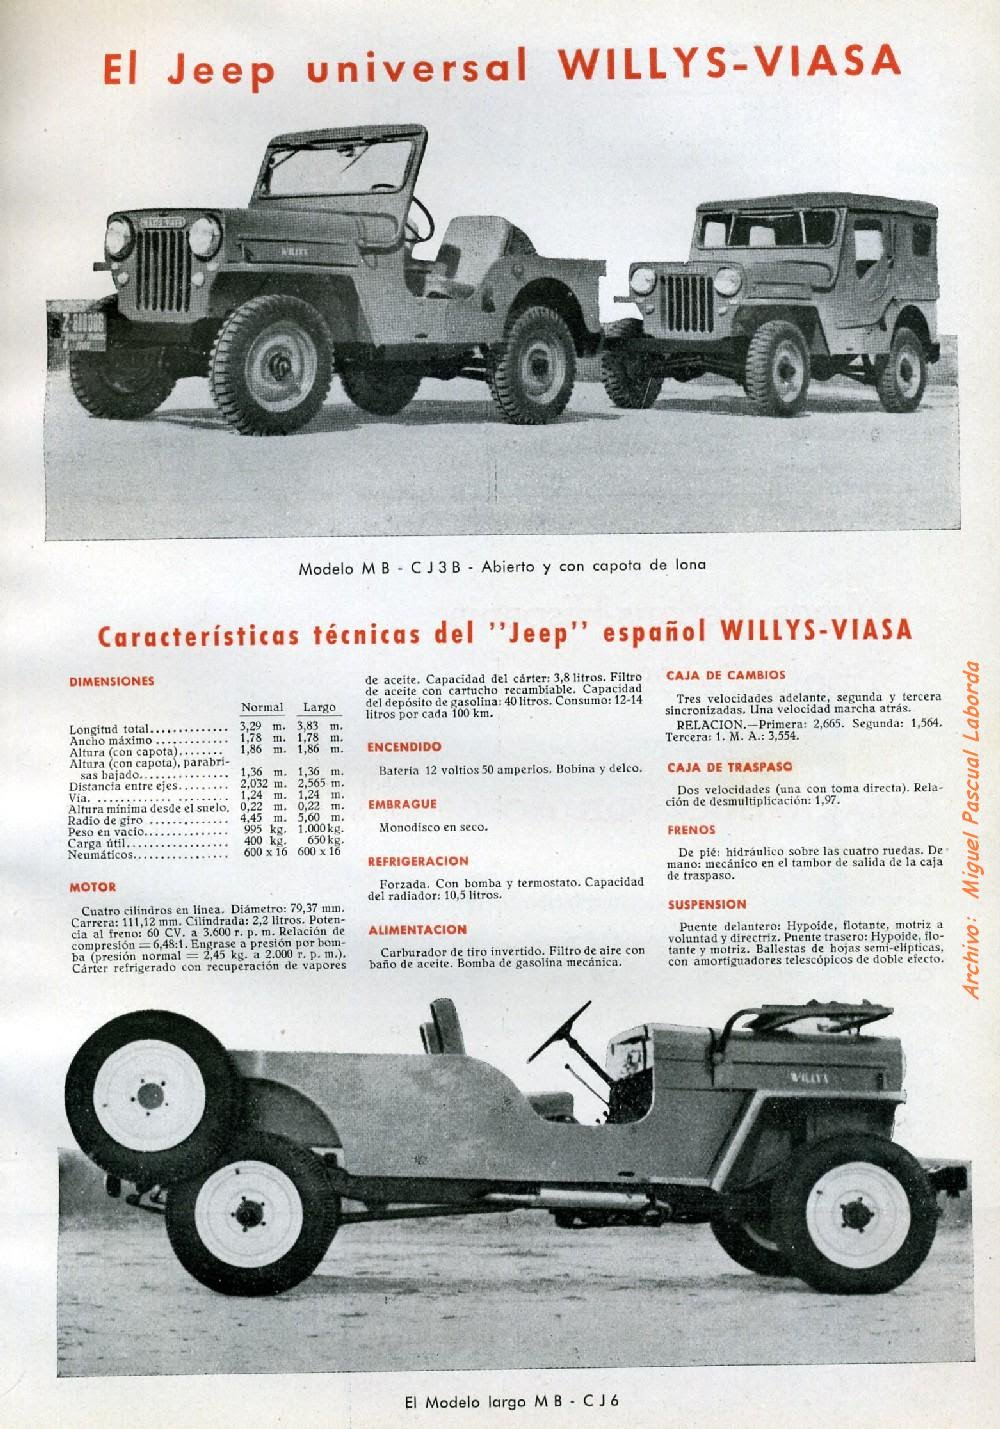 the history of the willys viasa mb cj3b my mb cj3b willys viasa rh mb cj3b com Willys Flat Fender Willys Bumperettes